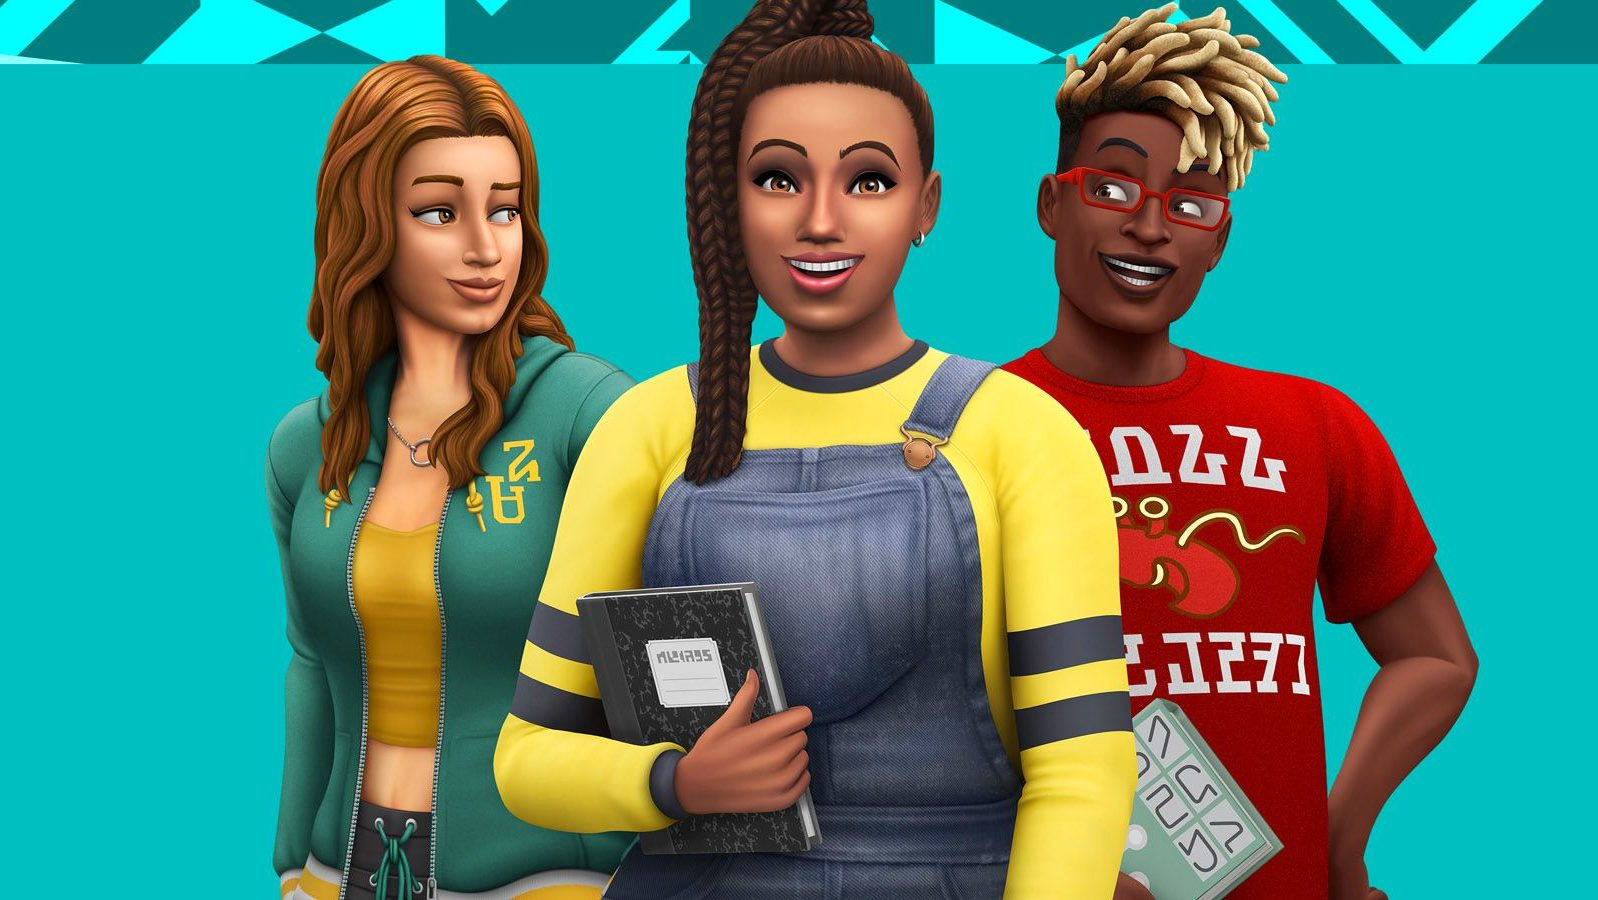 The Sims 5 Release Date, Gameplay 2021 Launch Date Announcement for the Next Installment